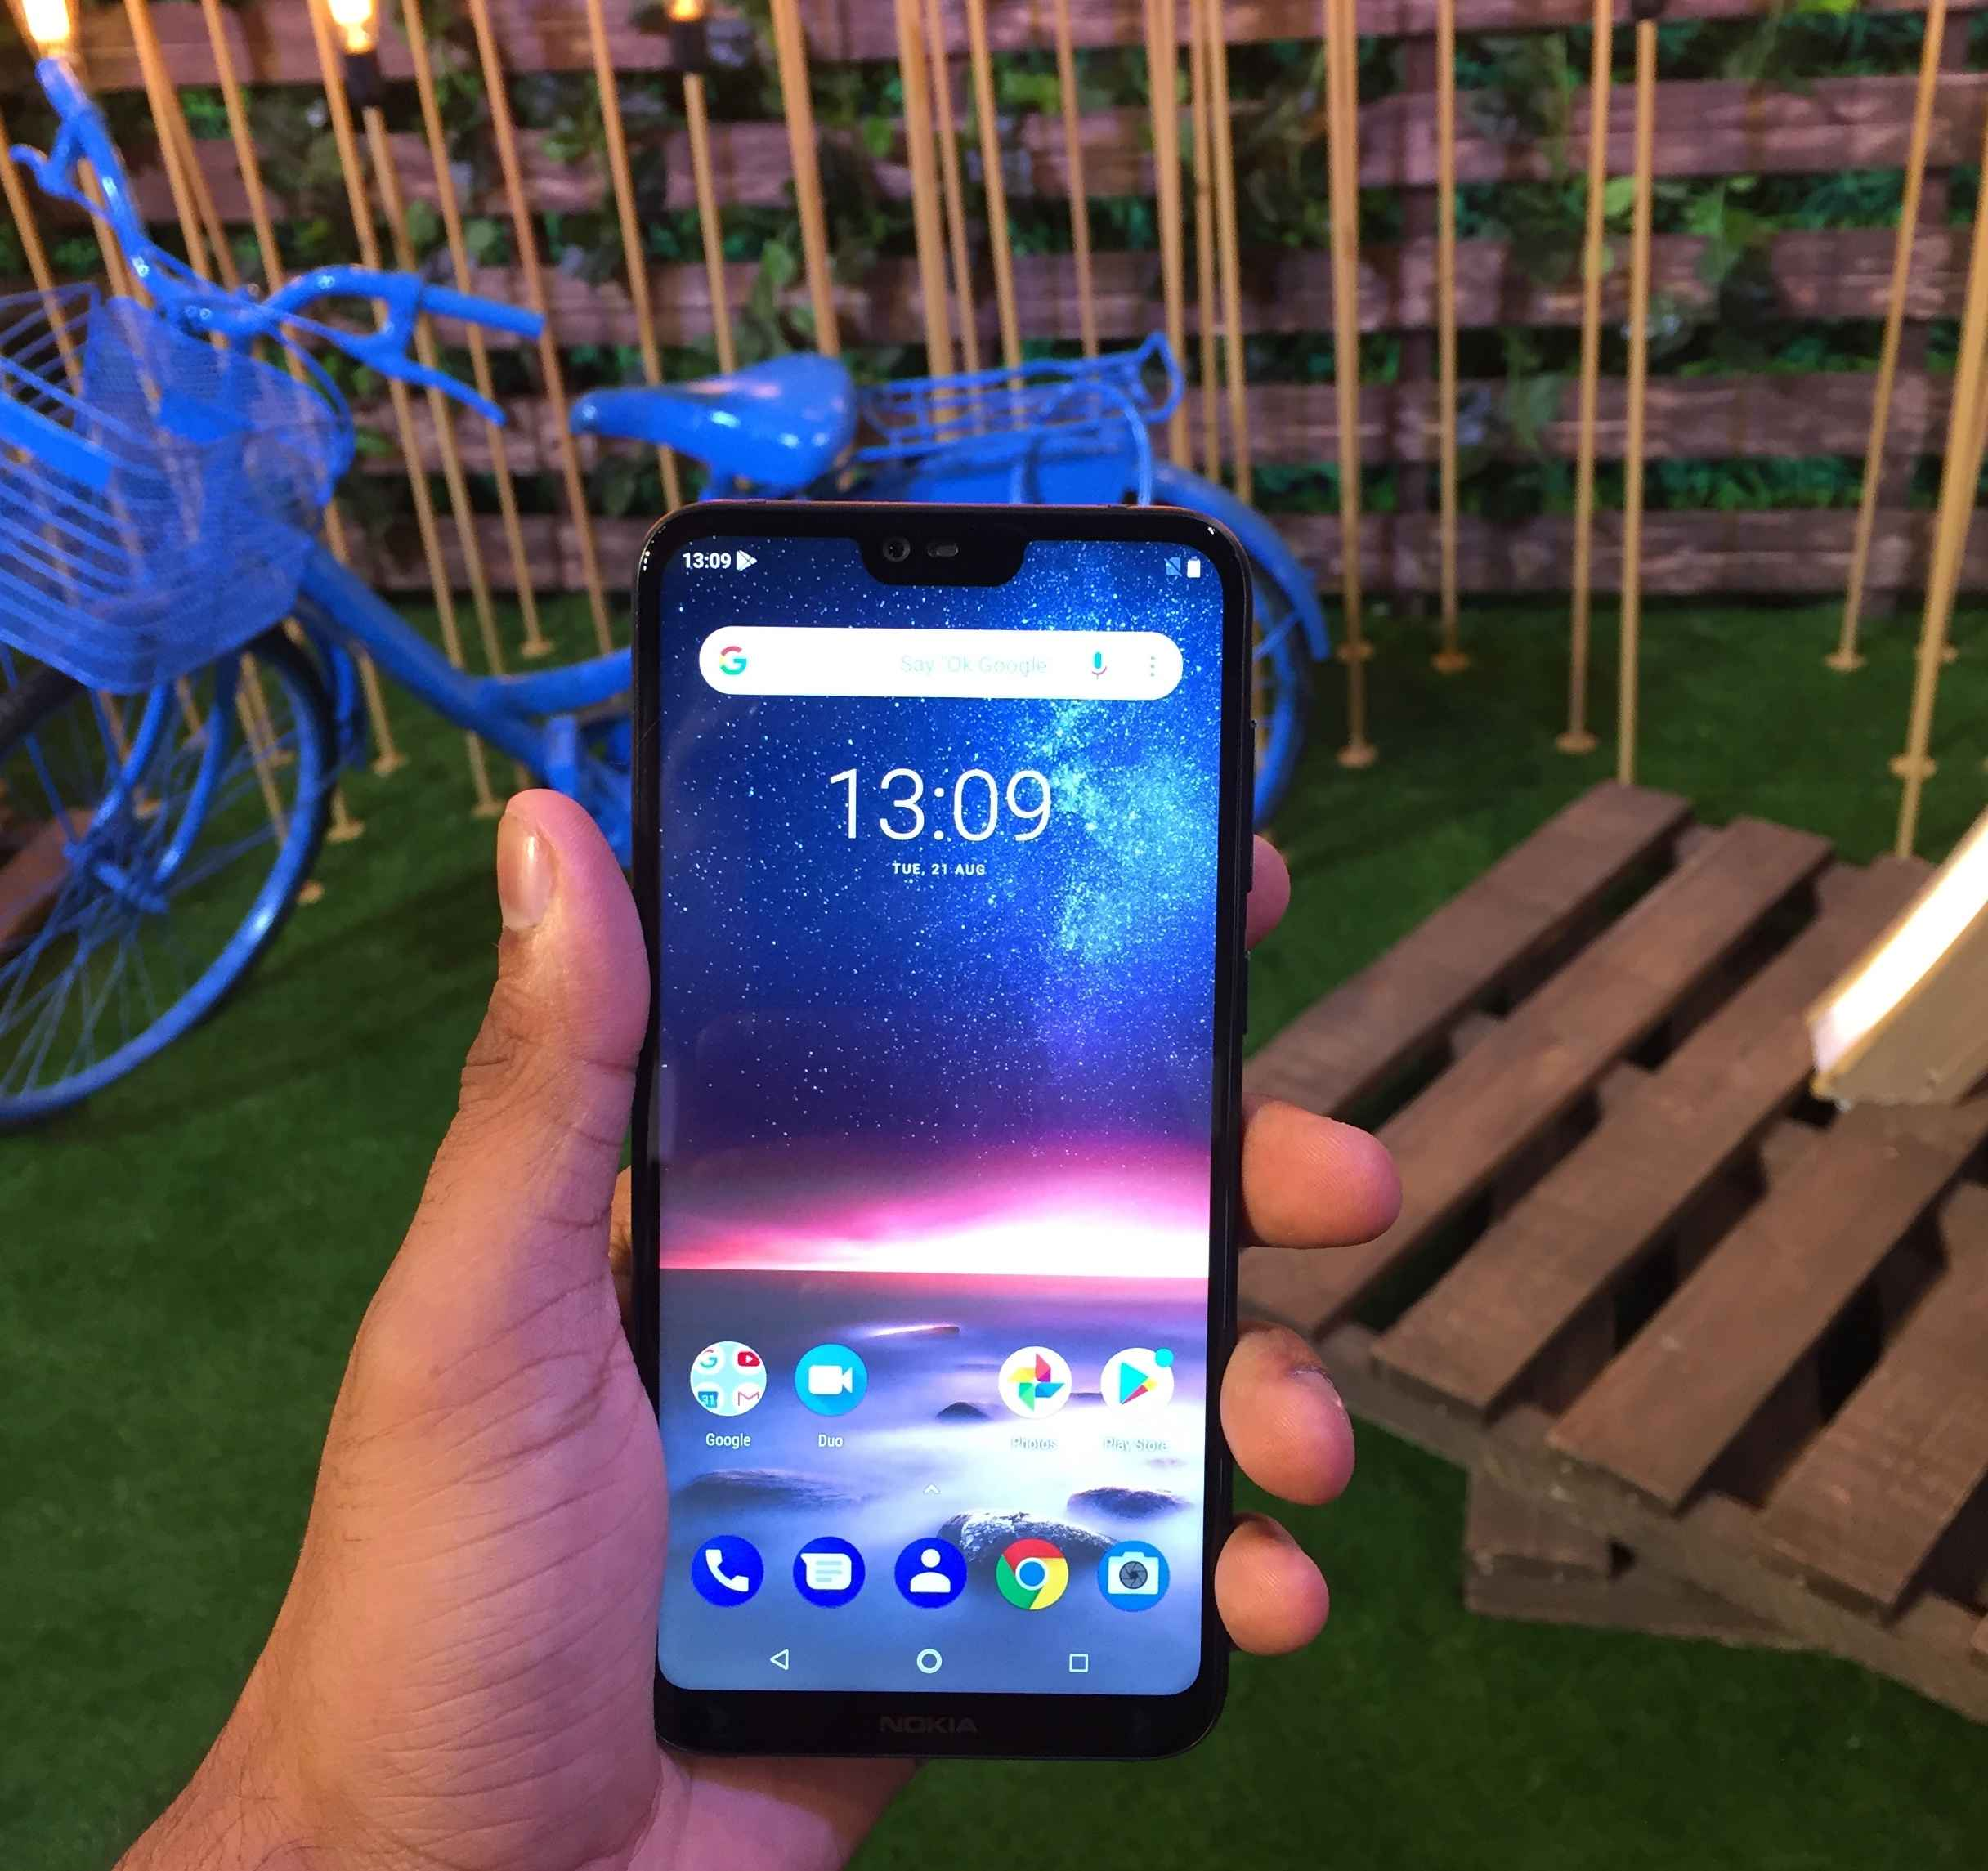 Nokia 6.1 Plus, Nokia 5.1 Plus in India : Price, specifications